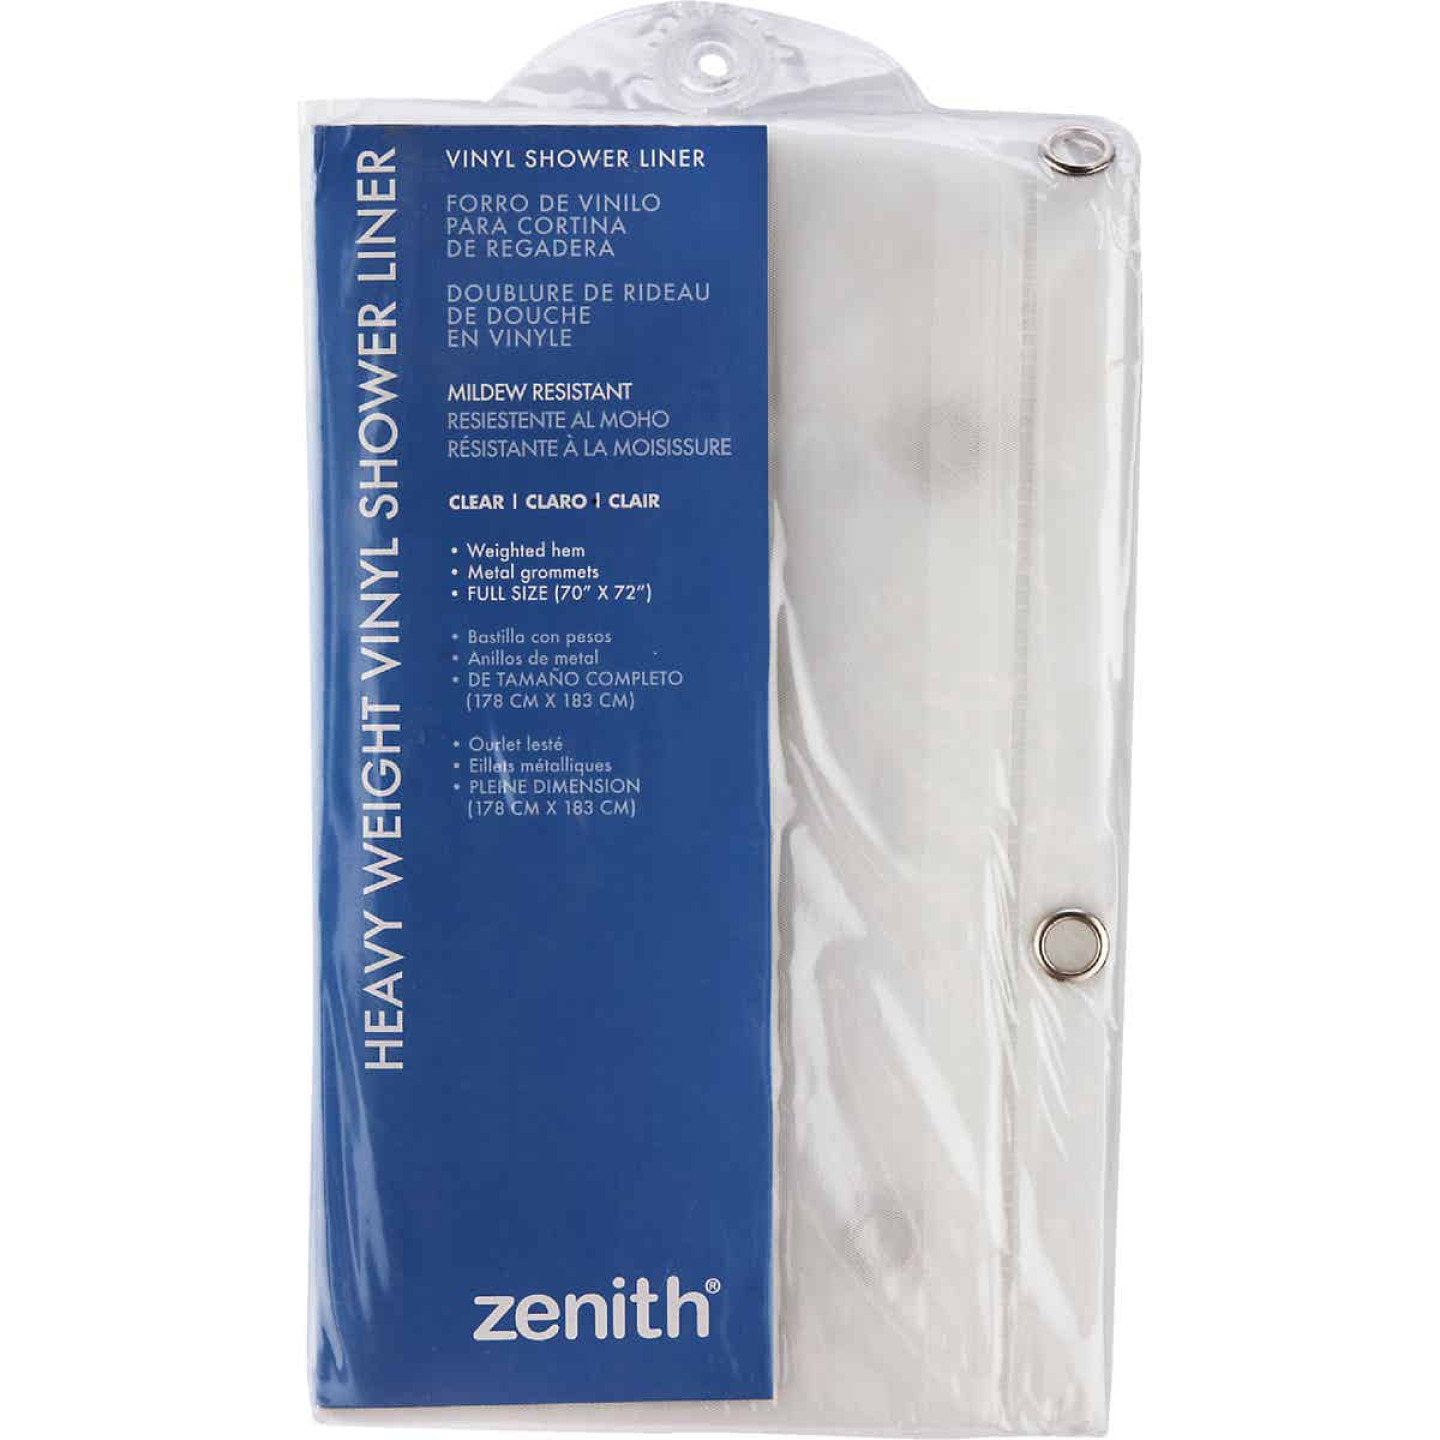 Zenith 70 In. x 72 In. Clear Medium Gauge PEVA Shower Curtain Liner Image 1